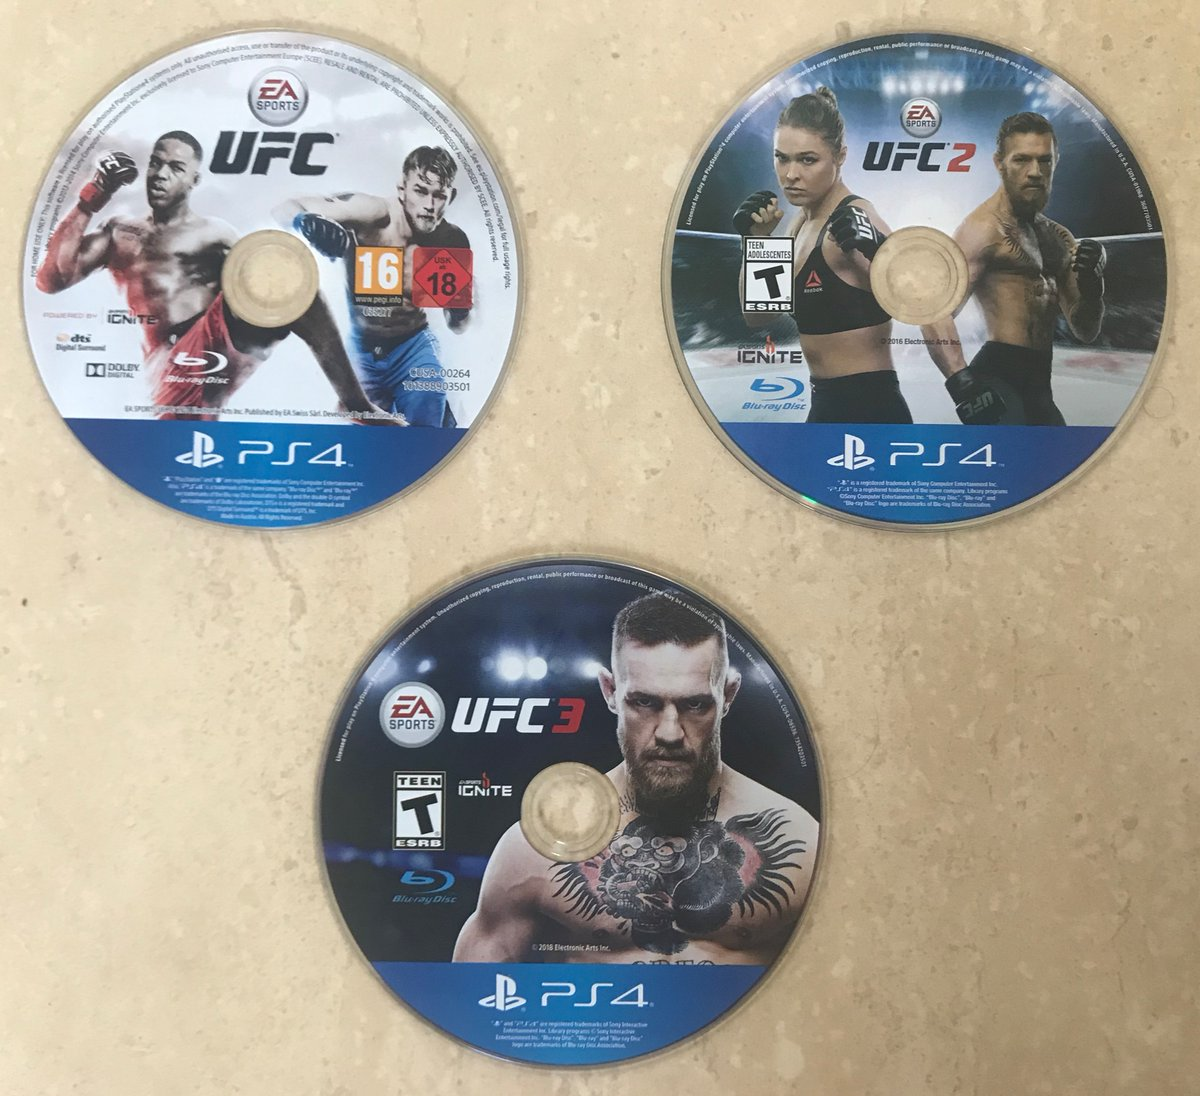 #UFC on PS4 I think things went from strength to strength in this series, what do you think? https://t.co/TJ1sitHLg5